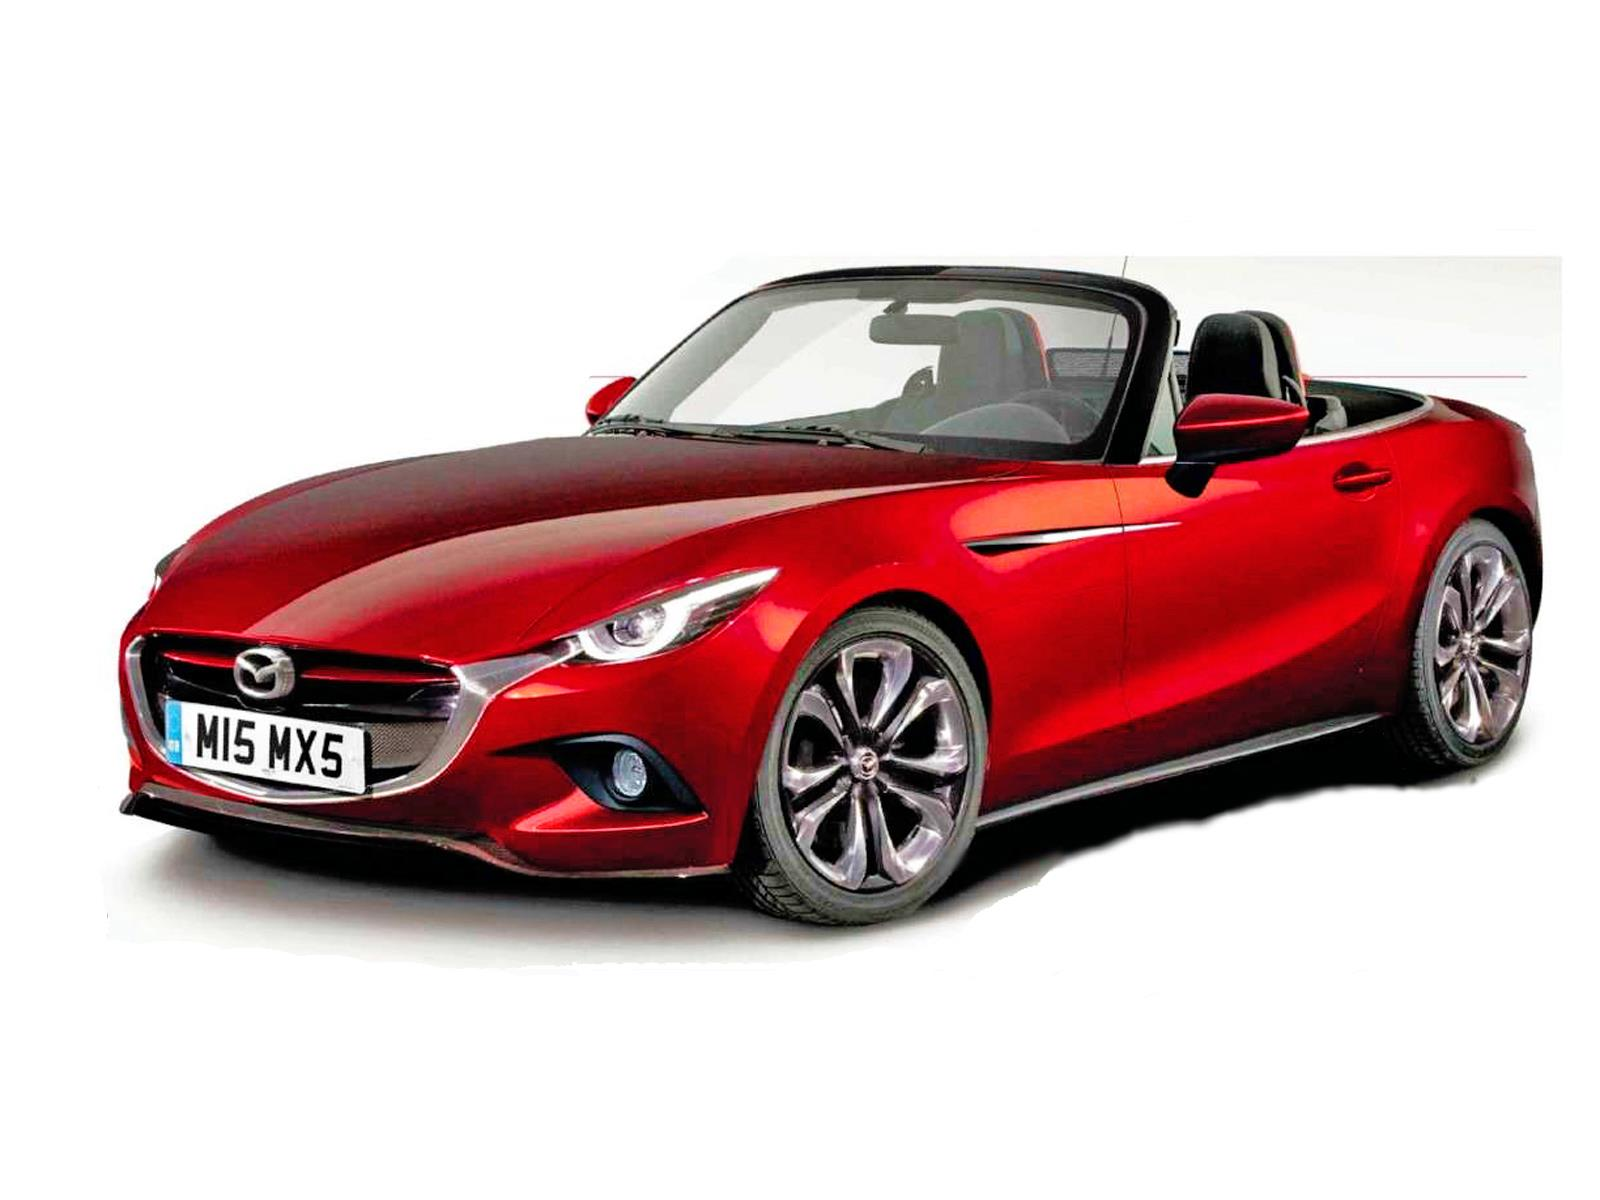 2019 Mazda Mx 5 Car Photos Catalog 2018